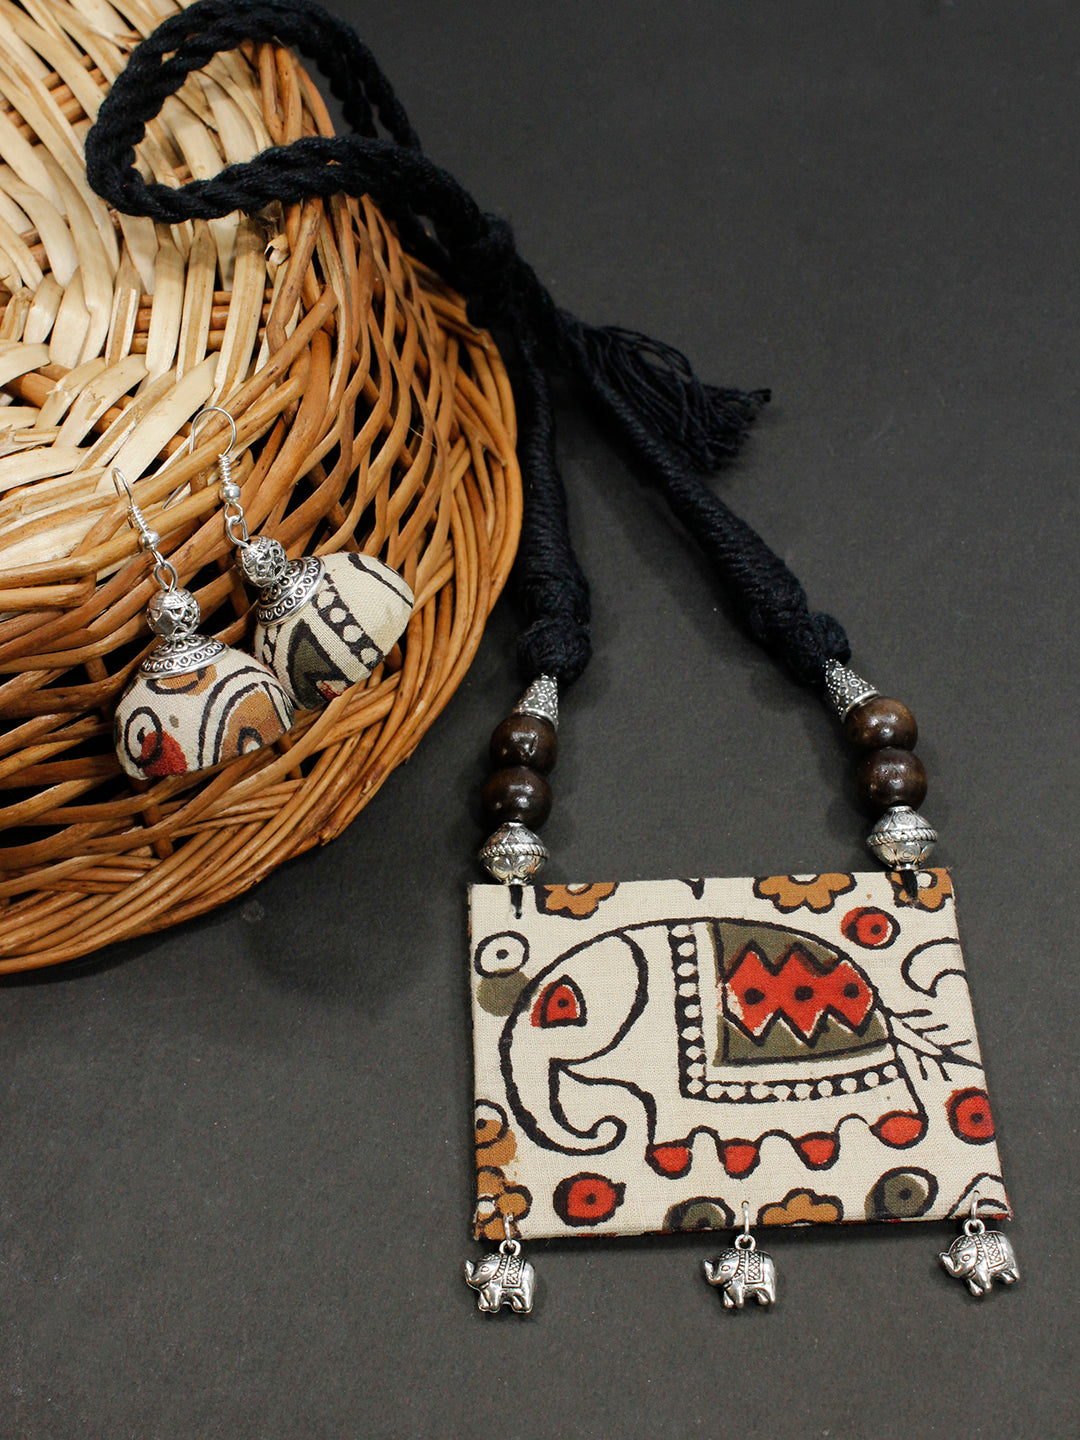 Kalamkari Fabric Printed Square Pendant Design Handmade Necklace Set-AVISMAYA1-Necklace Set